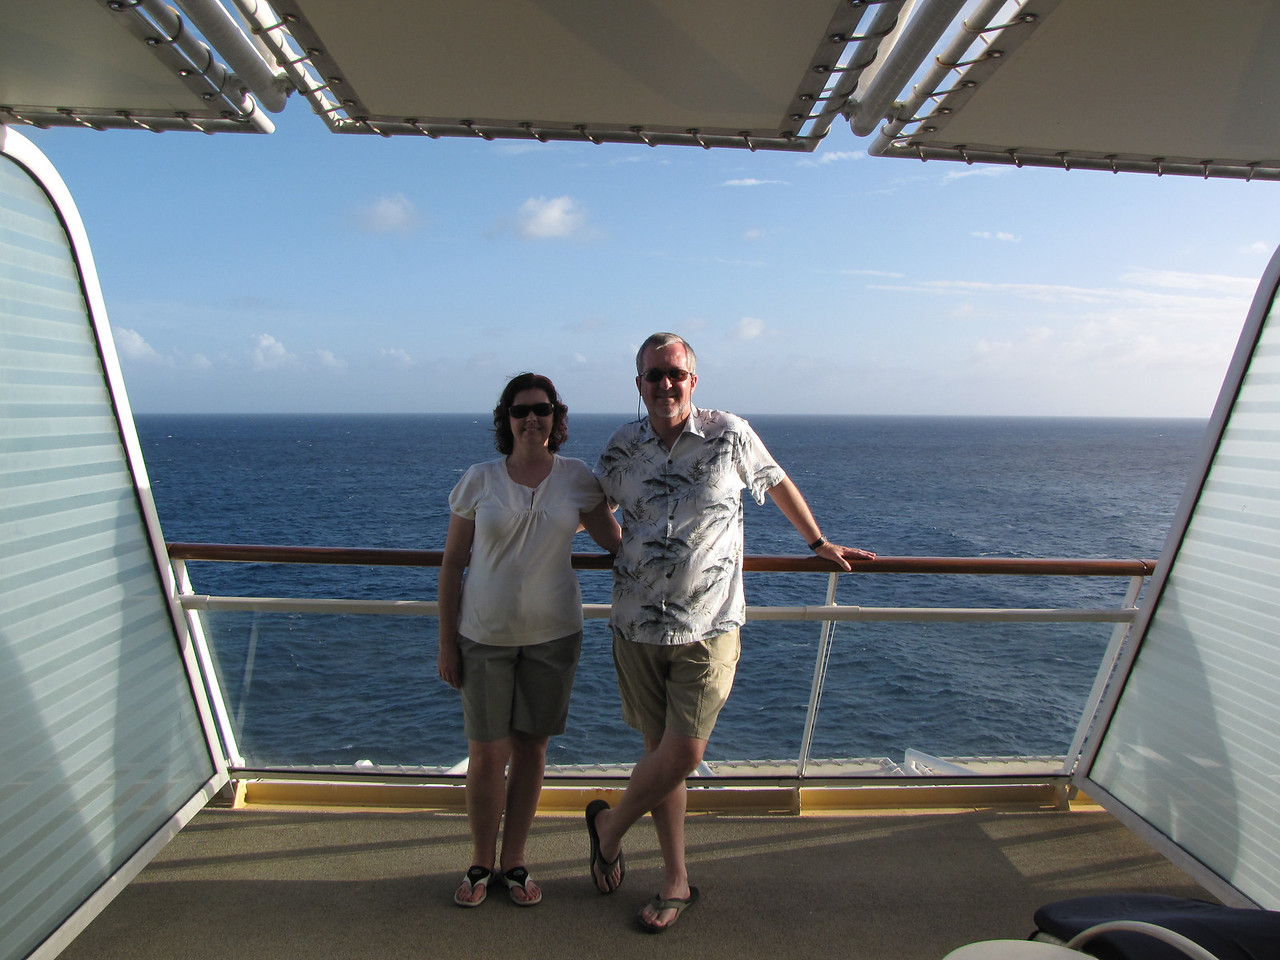 Enjoying our spacious balcony while we wait for sail-away.